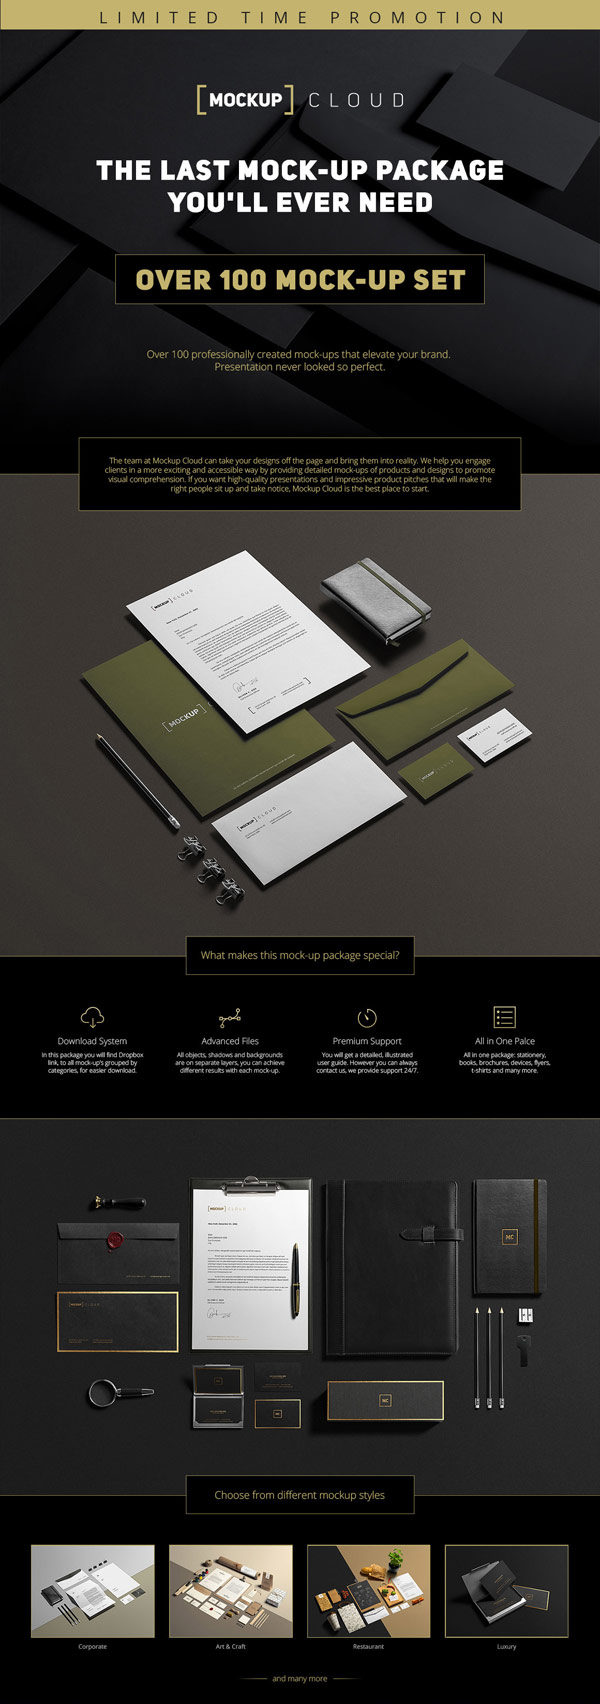 With over 100 individual mock-up sets for branding projects, this is probably the last mockup you will ever need.